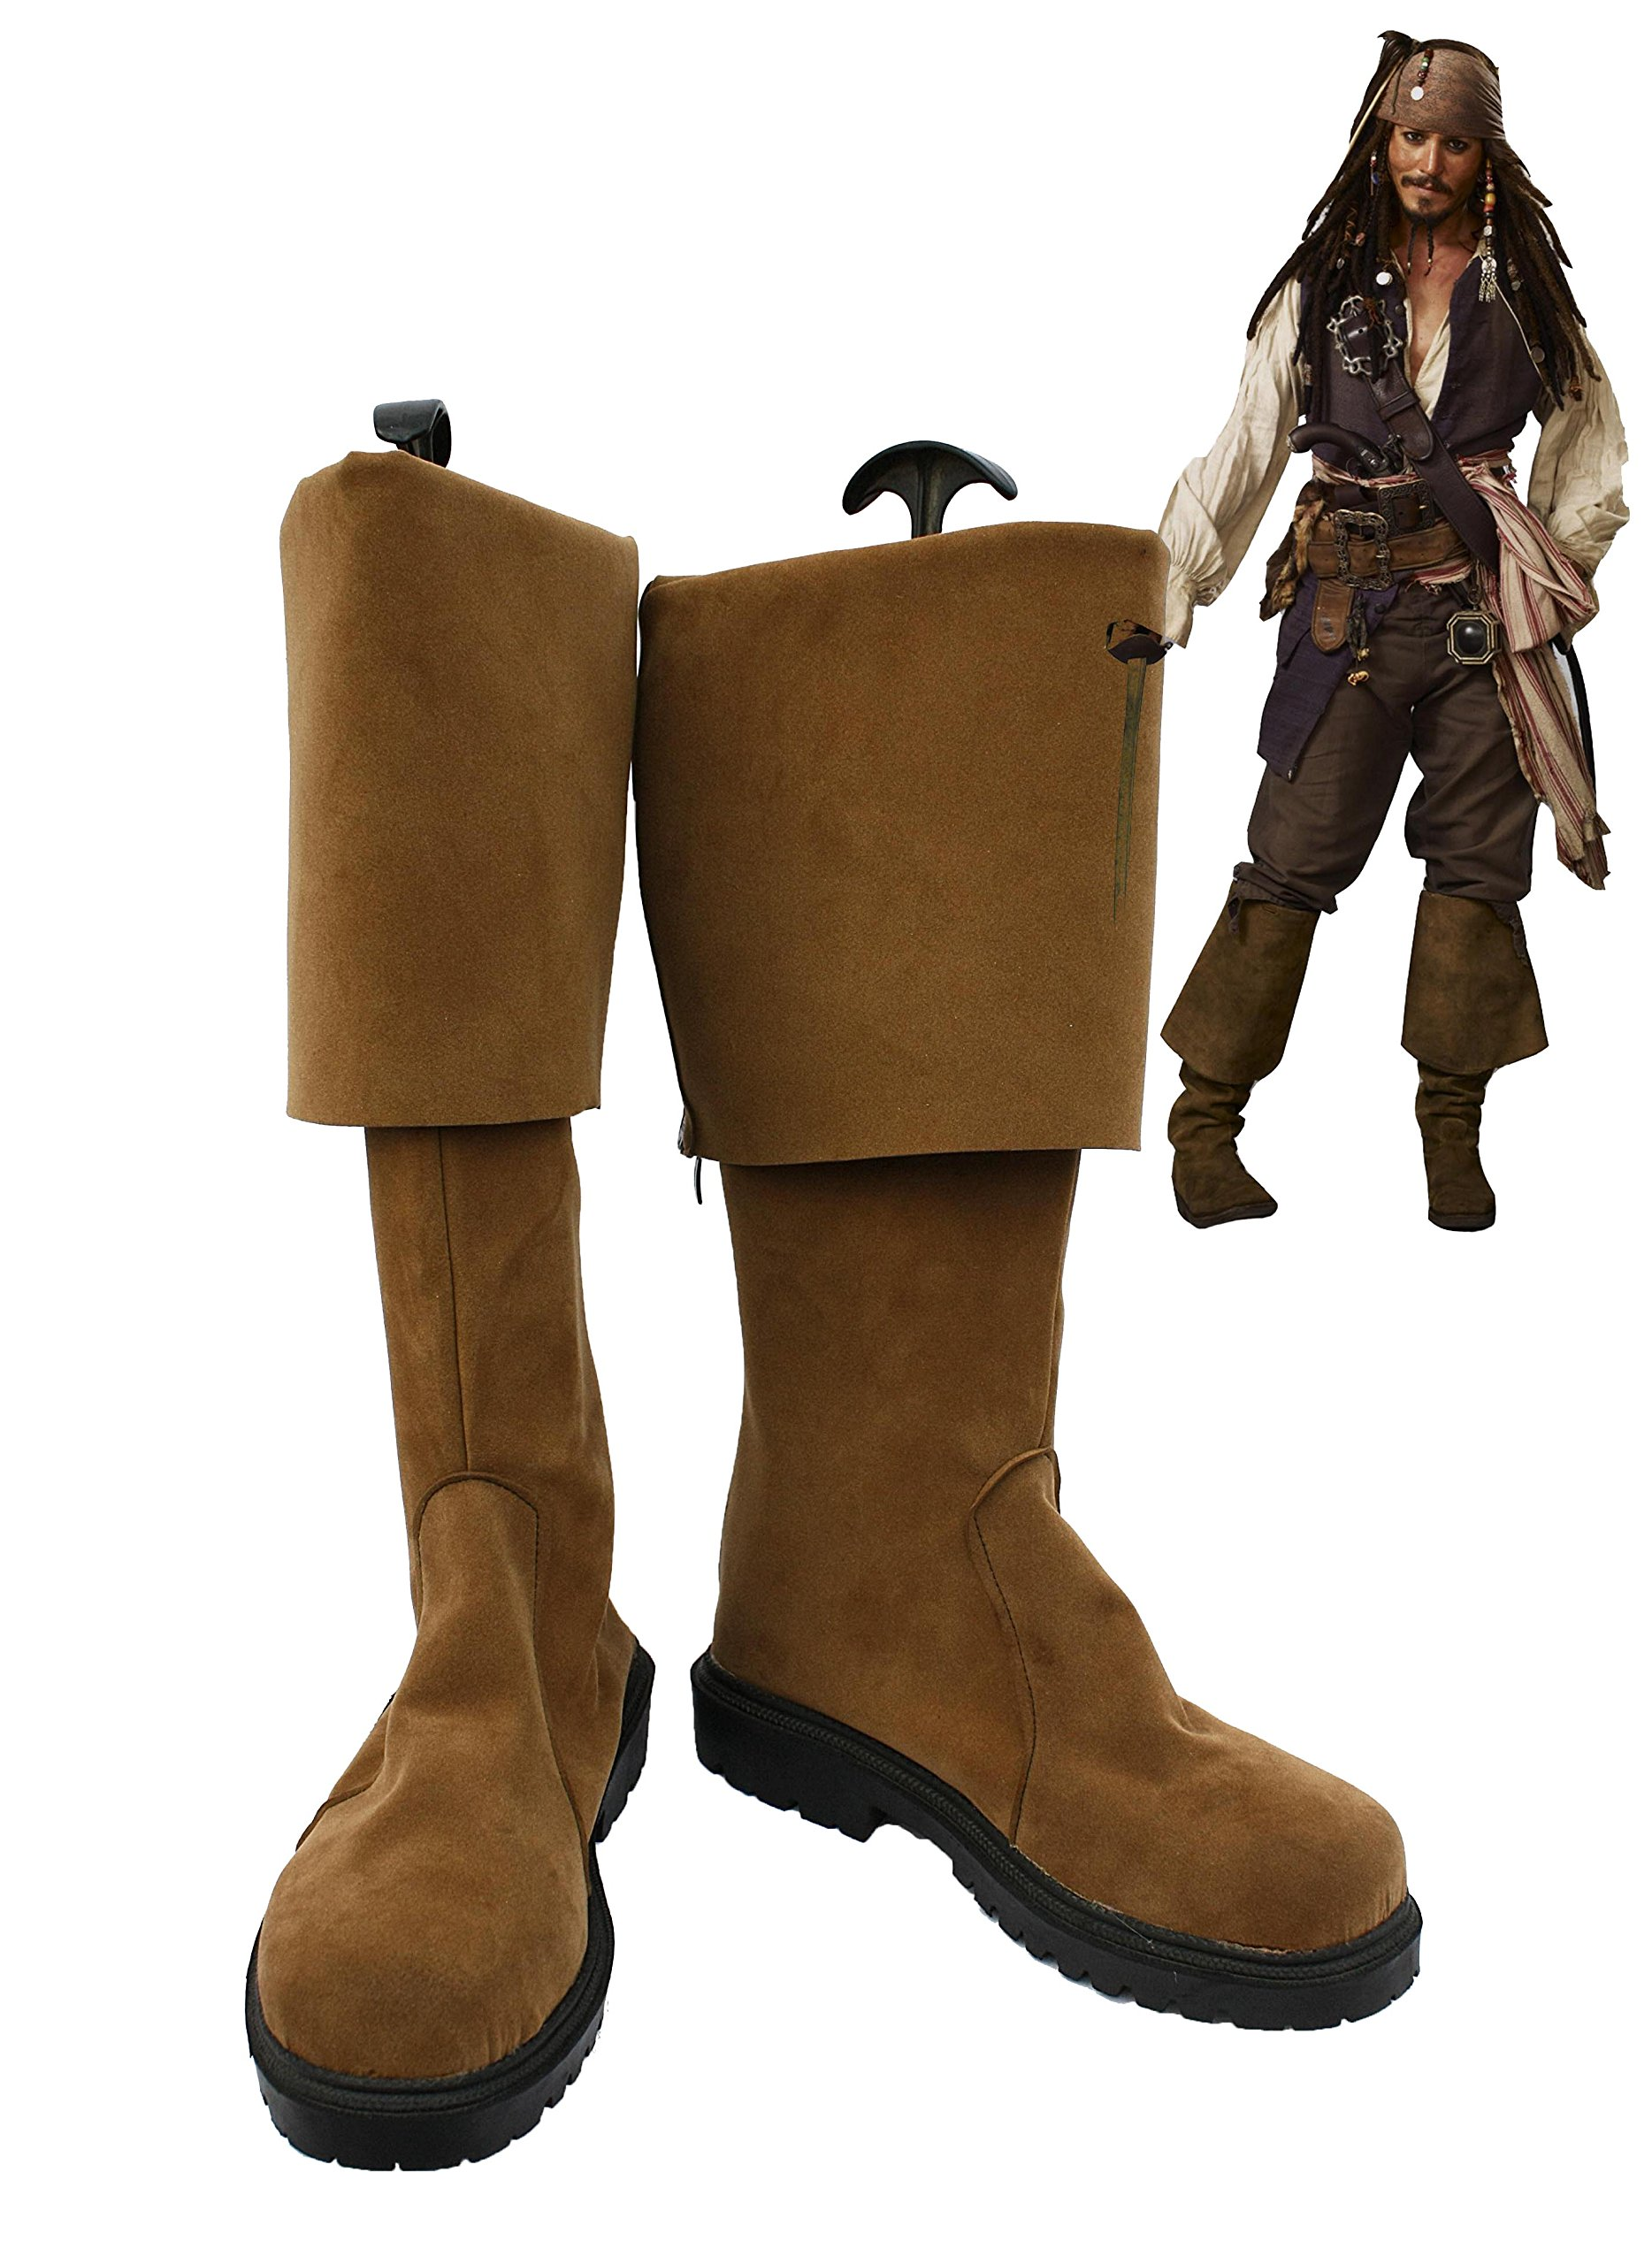 Pirates of the Caribbean Jack Sparrow Cosplay Shoes Boots Custom Made